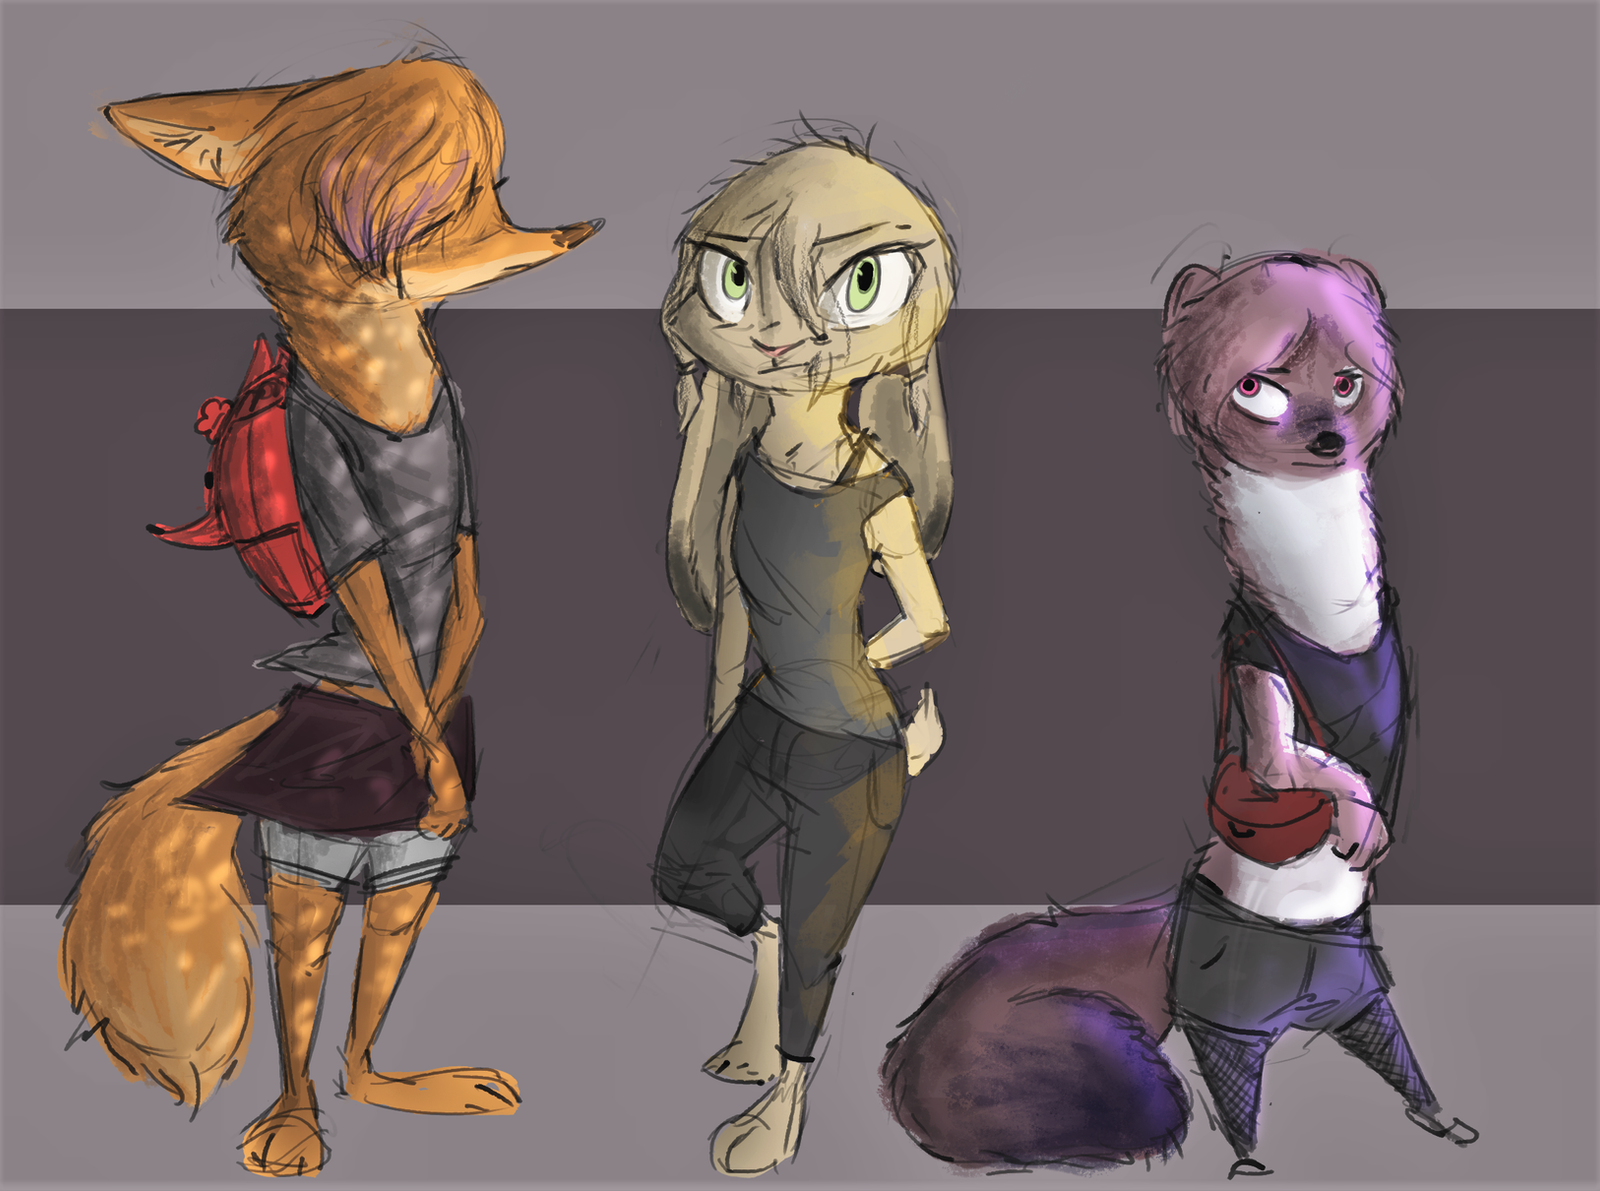 Character Design Zootopia : Zootopia drifter project character designs by